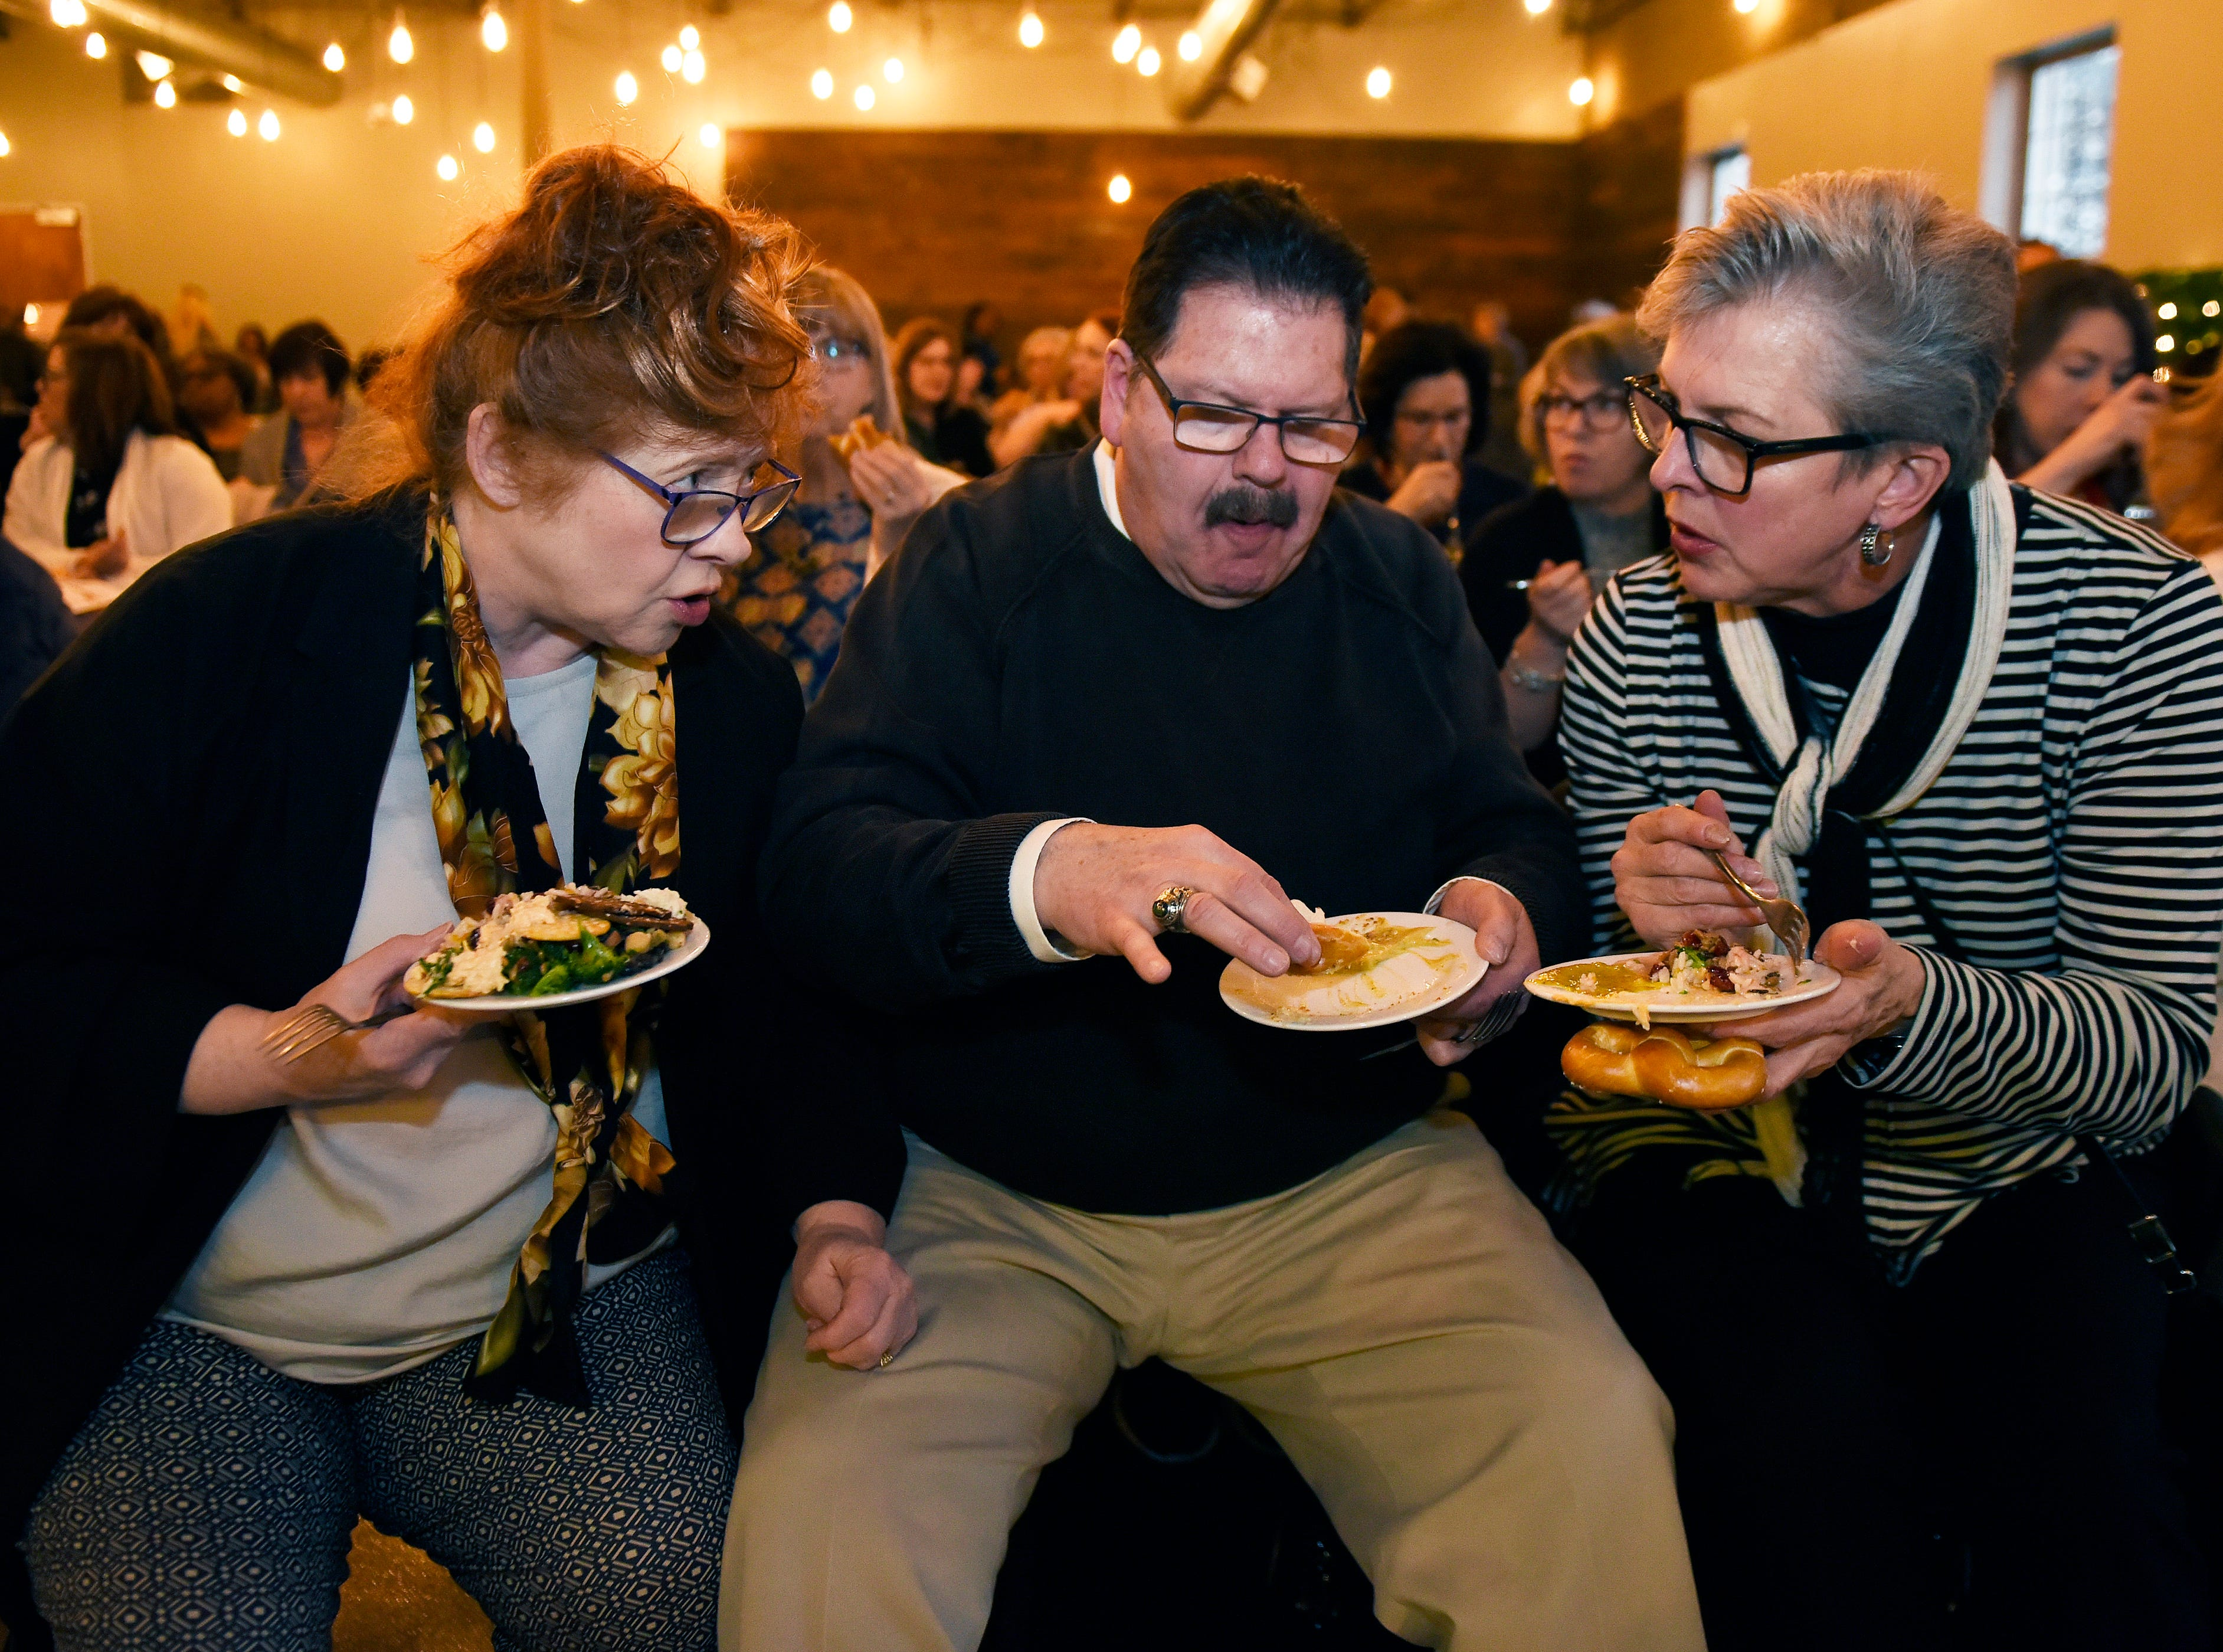 l-r, Nancy Jeffers and her husband Gary Jeffers of Northville and Louise Coleman of Novi converse while eating a dish of food prior to the start of the event.